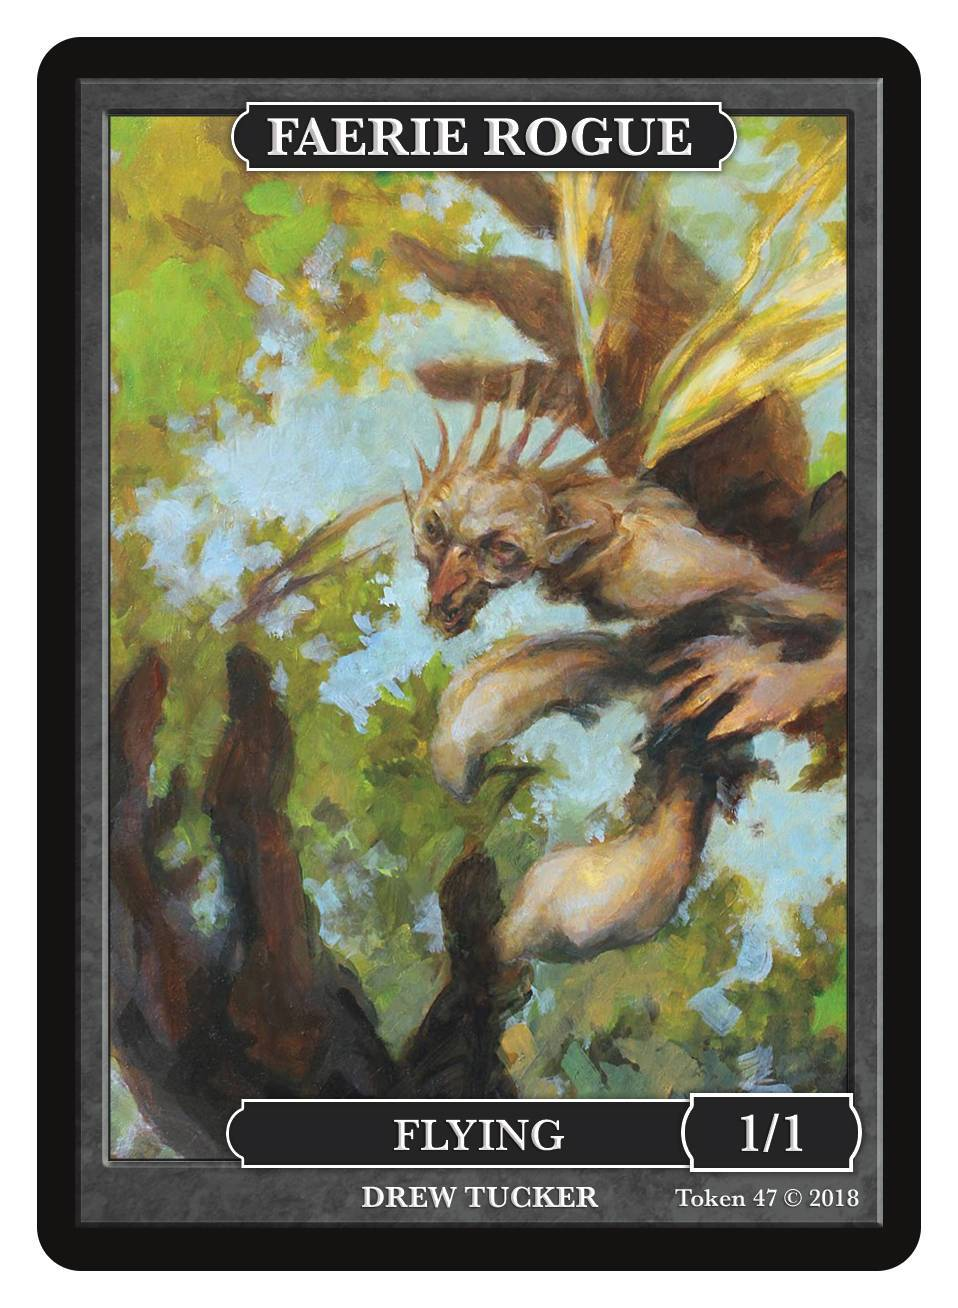 Faerie Rogue Token (1/1 - Flying) by Drew Tucker - Token - Original Magic Art - Accessories for Magic the Gathering and other card games